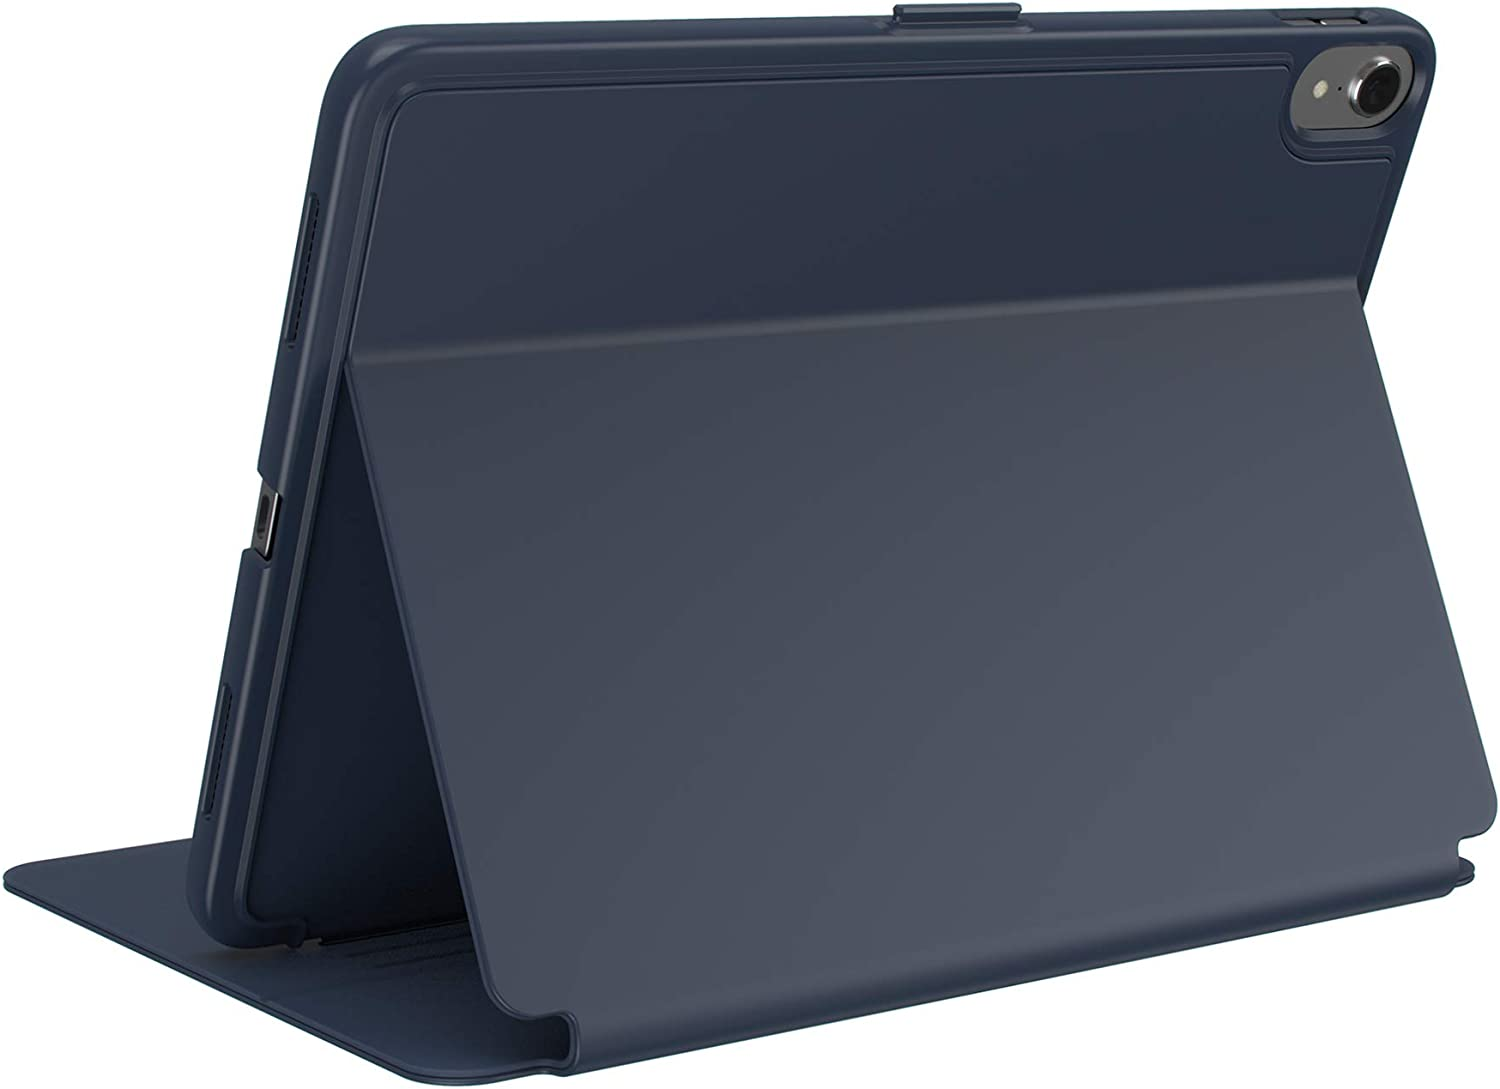 Speck Products Compatible Case for Apple iPad 9.7-inch (2017/2018, also fits 9.7-inch iPad Pro, iPad Air 2/Air), Balance FOLIO Case and Stand, Marine Blue/Twilight Blue